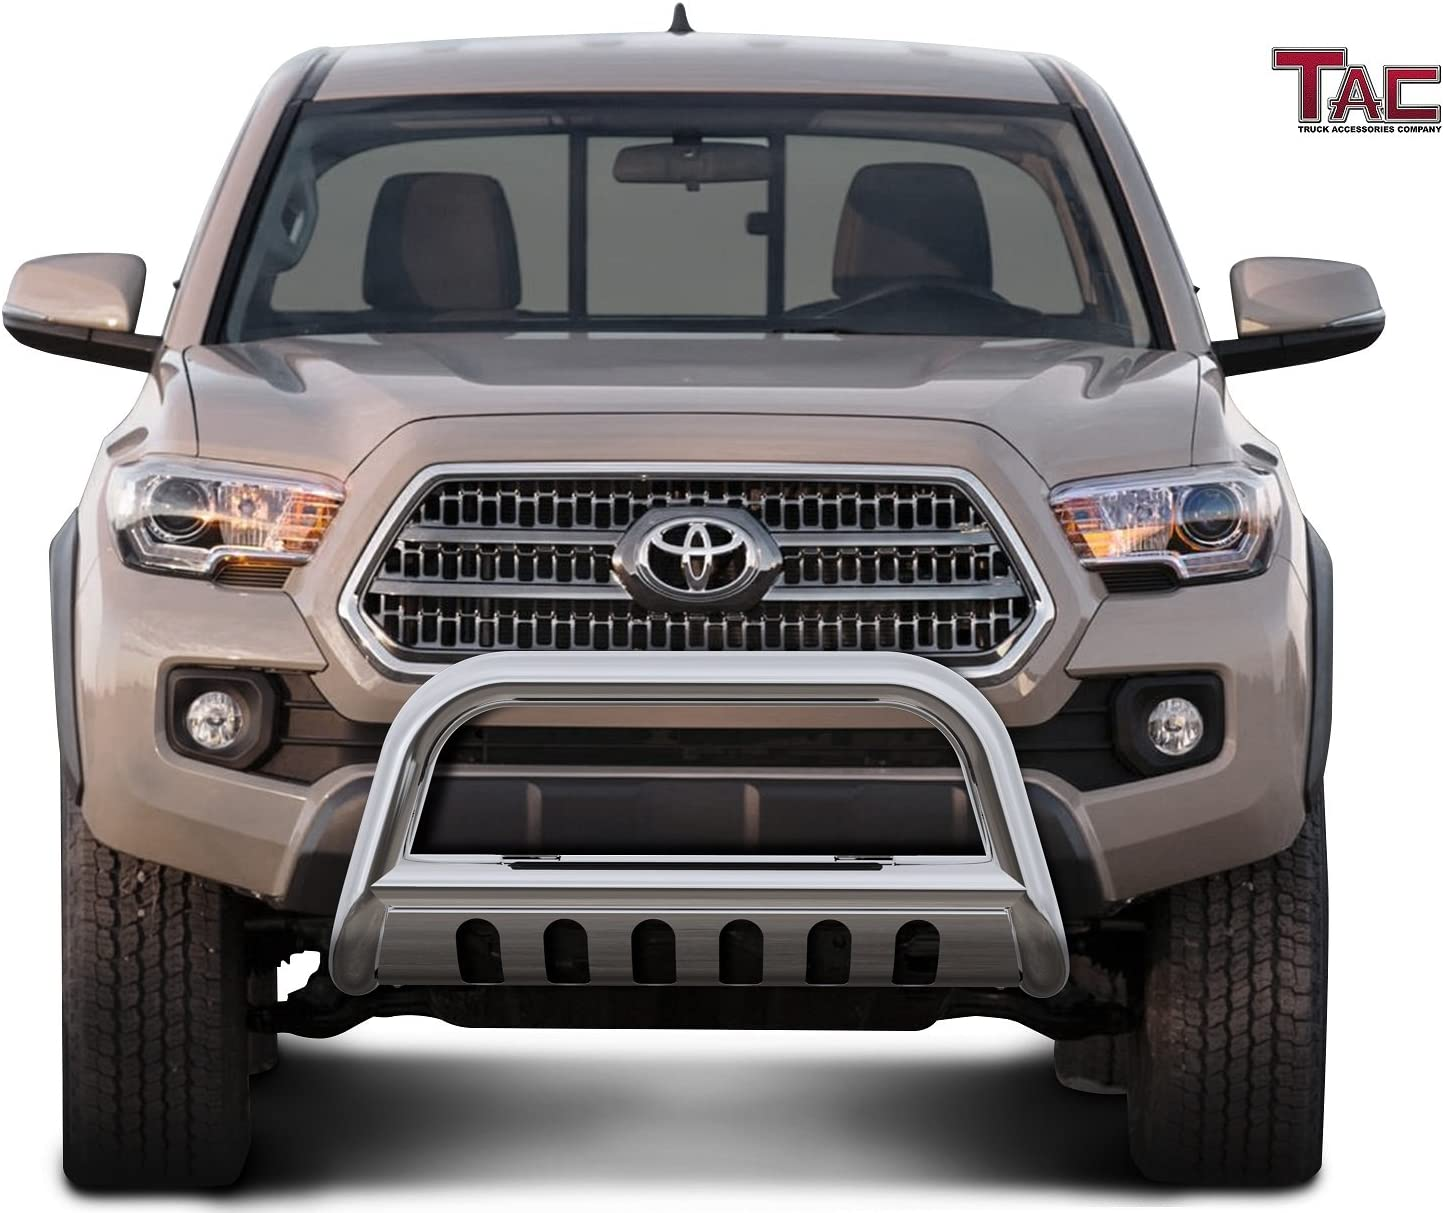 Remove Skid Plate- If Equipped BETTER AUTOMOTIVE 3 Bull BAR Fit 2016-2020 Toyota Tacoma Black Bumper Brush Guard